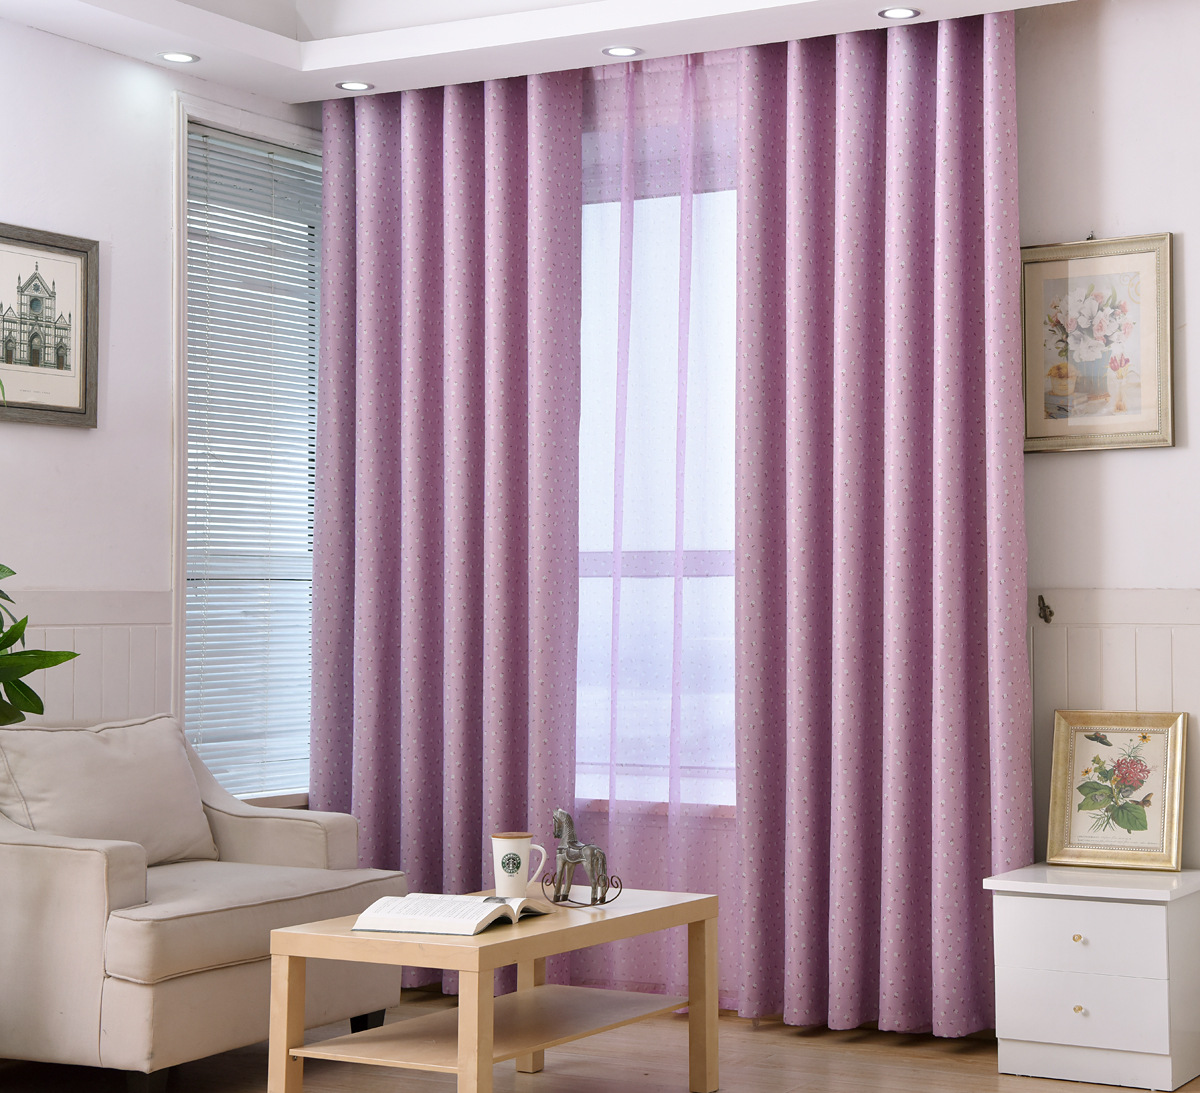 Pink Curtains For Bedroom Aliexpresscom Buy Myru Pastoral Style Little Flowers Curtains